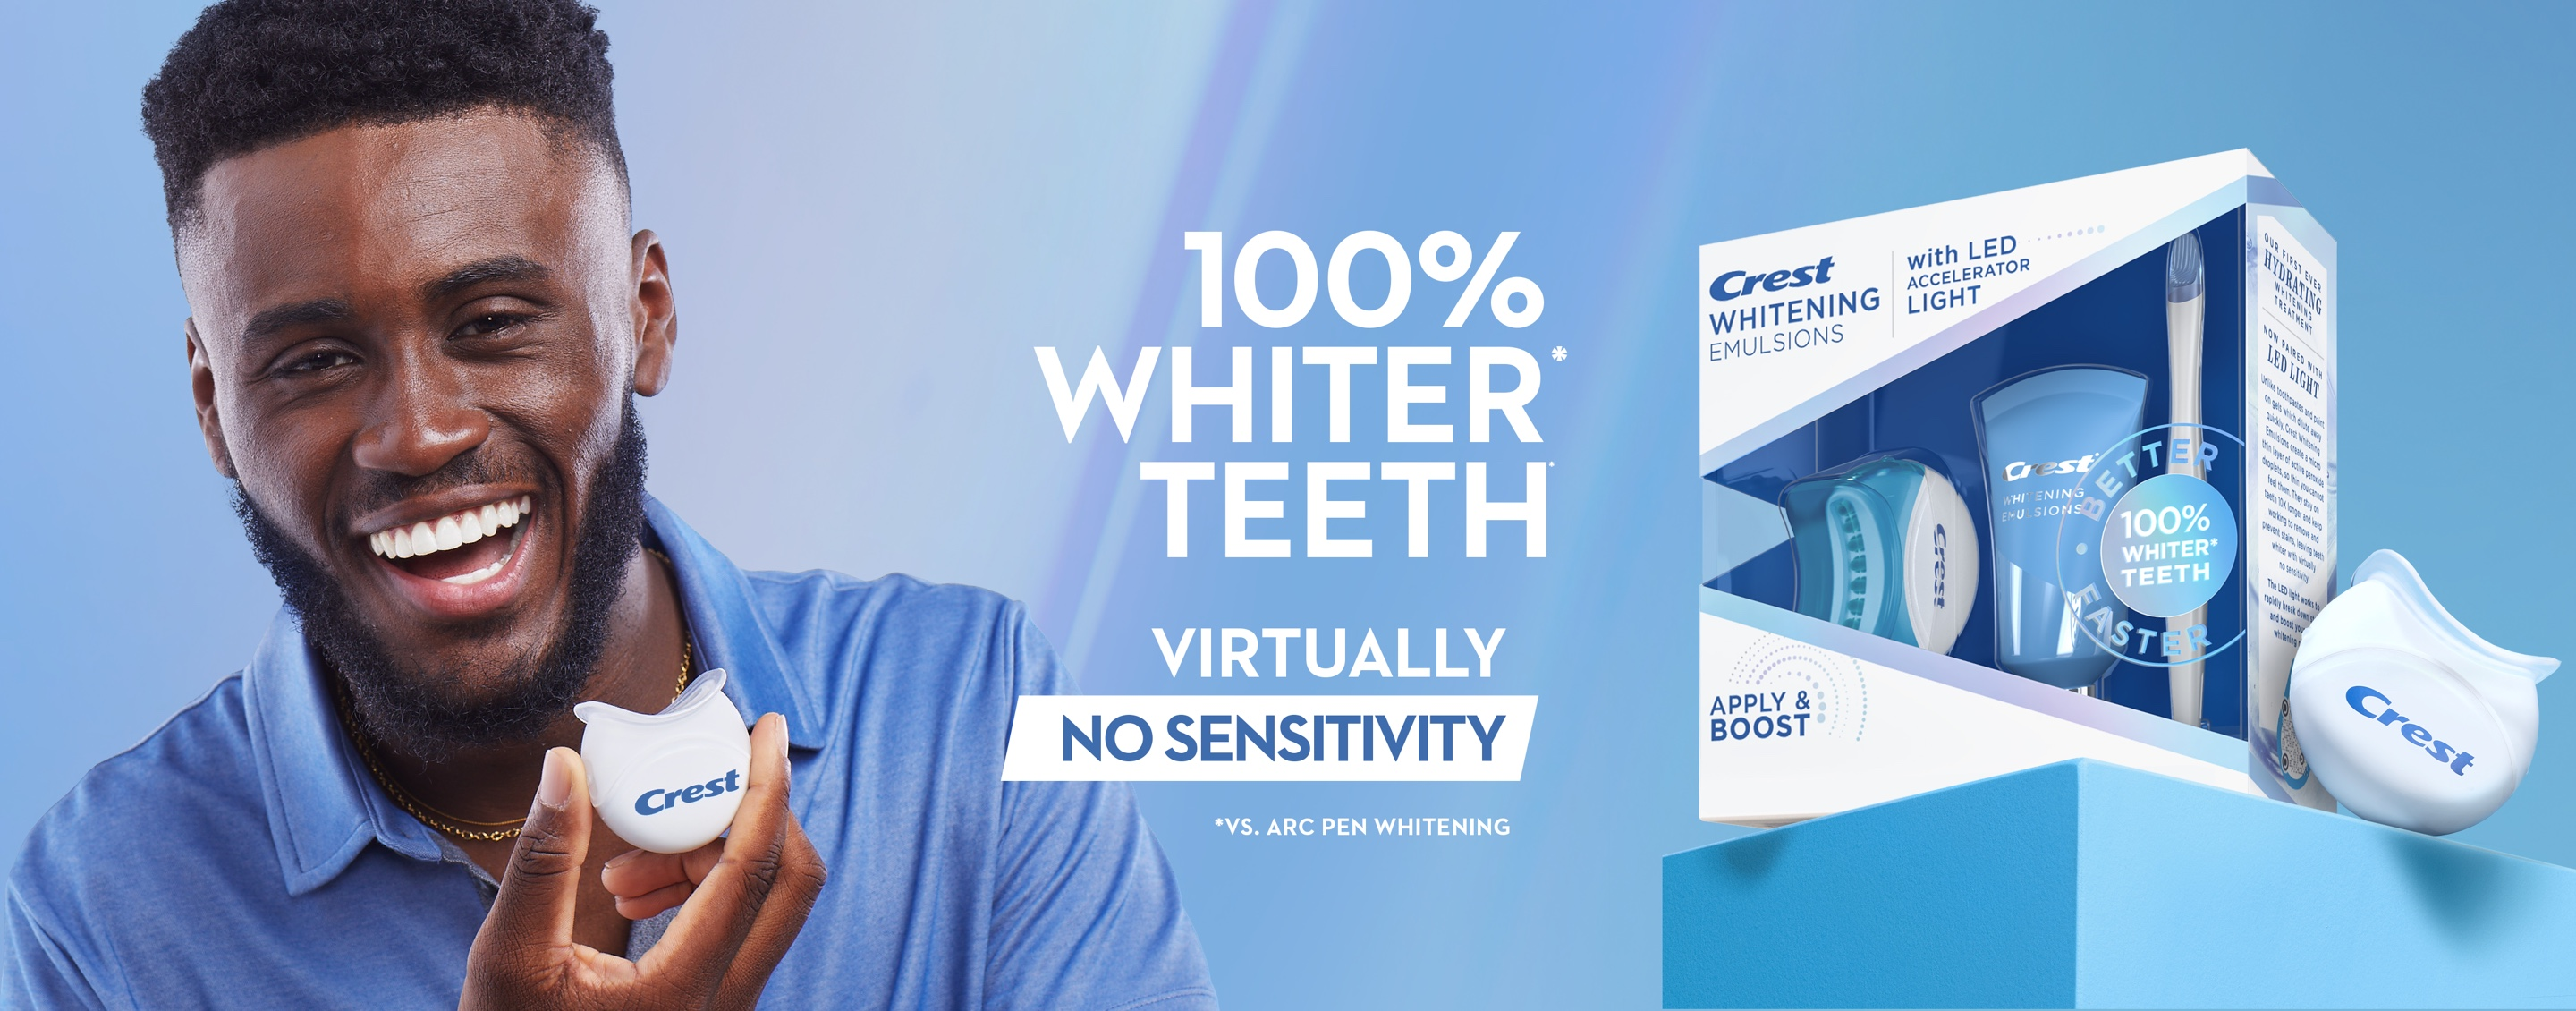 100% Whiter Teeth Virtually no sensitivity